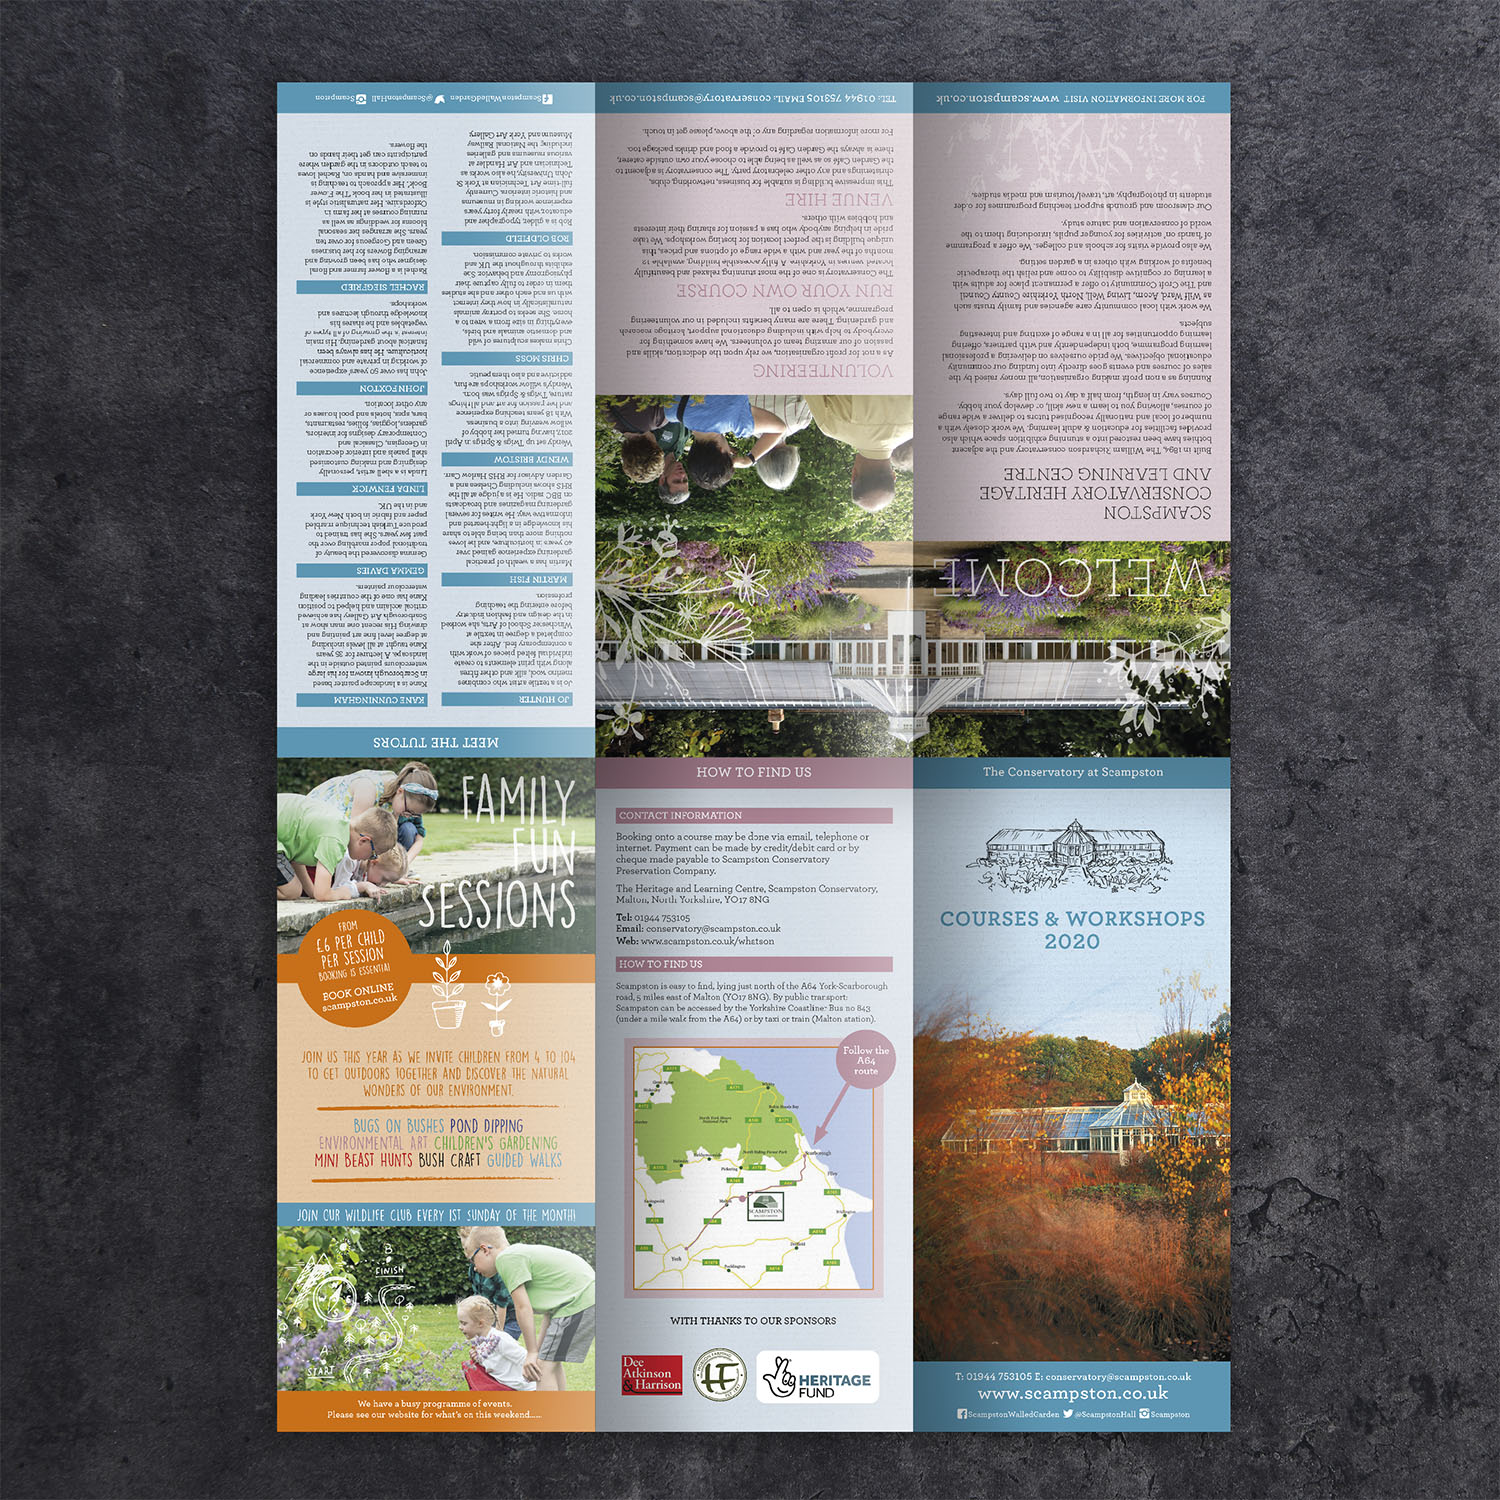 The Conservatory at Scampston - Courses & Workshops A4 Leaflet - outside